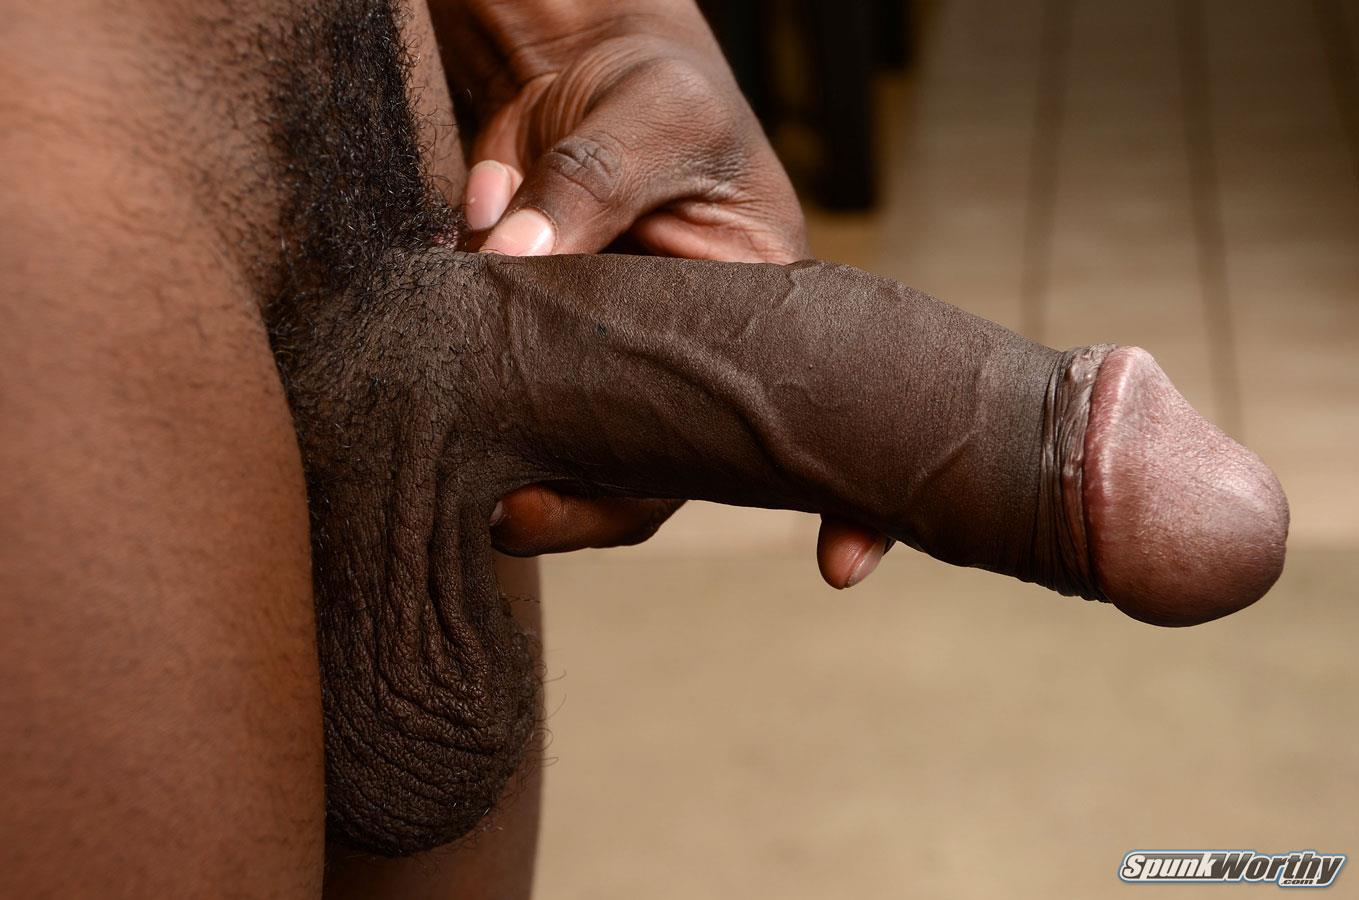 SpunkWorthy-Heath-Naked-College-Football-Player-Stroking-His-Big-Black-Cock-Amateur-Gay-Porn-09 Straight College Football Player Jerking His Big Uncut Black Cock